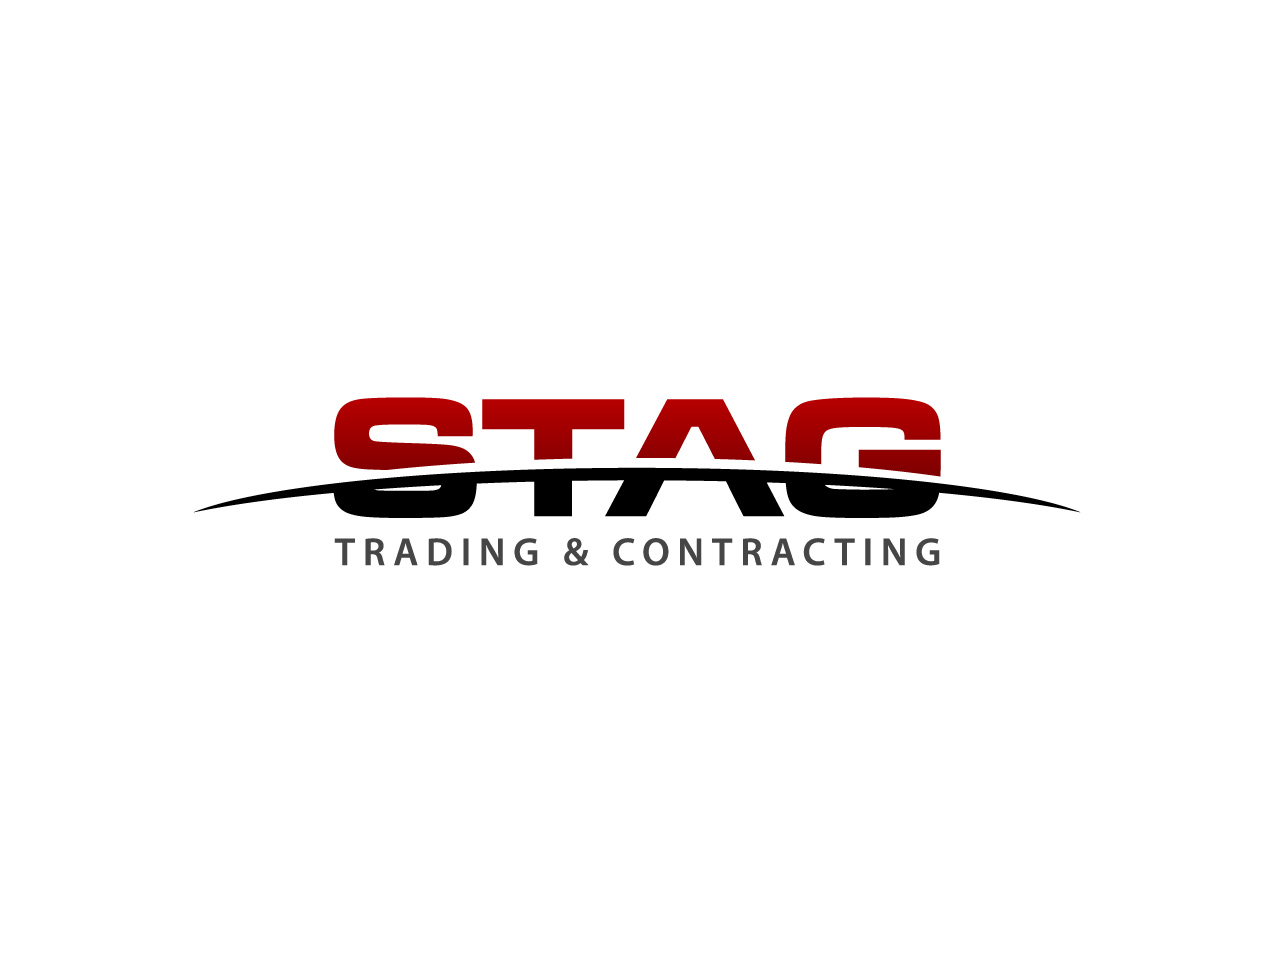 Logo Design by jpbituin - Entry No. 190 in the Logo Design Contest Captivating Logo Design for STAG Trading & Contracting.